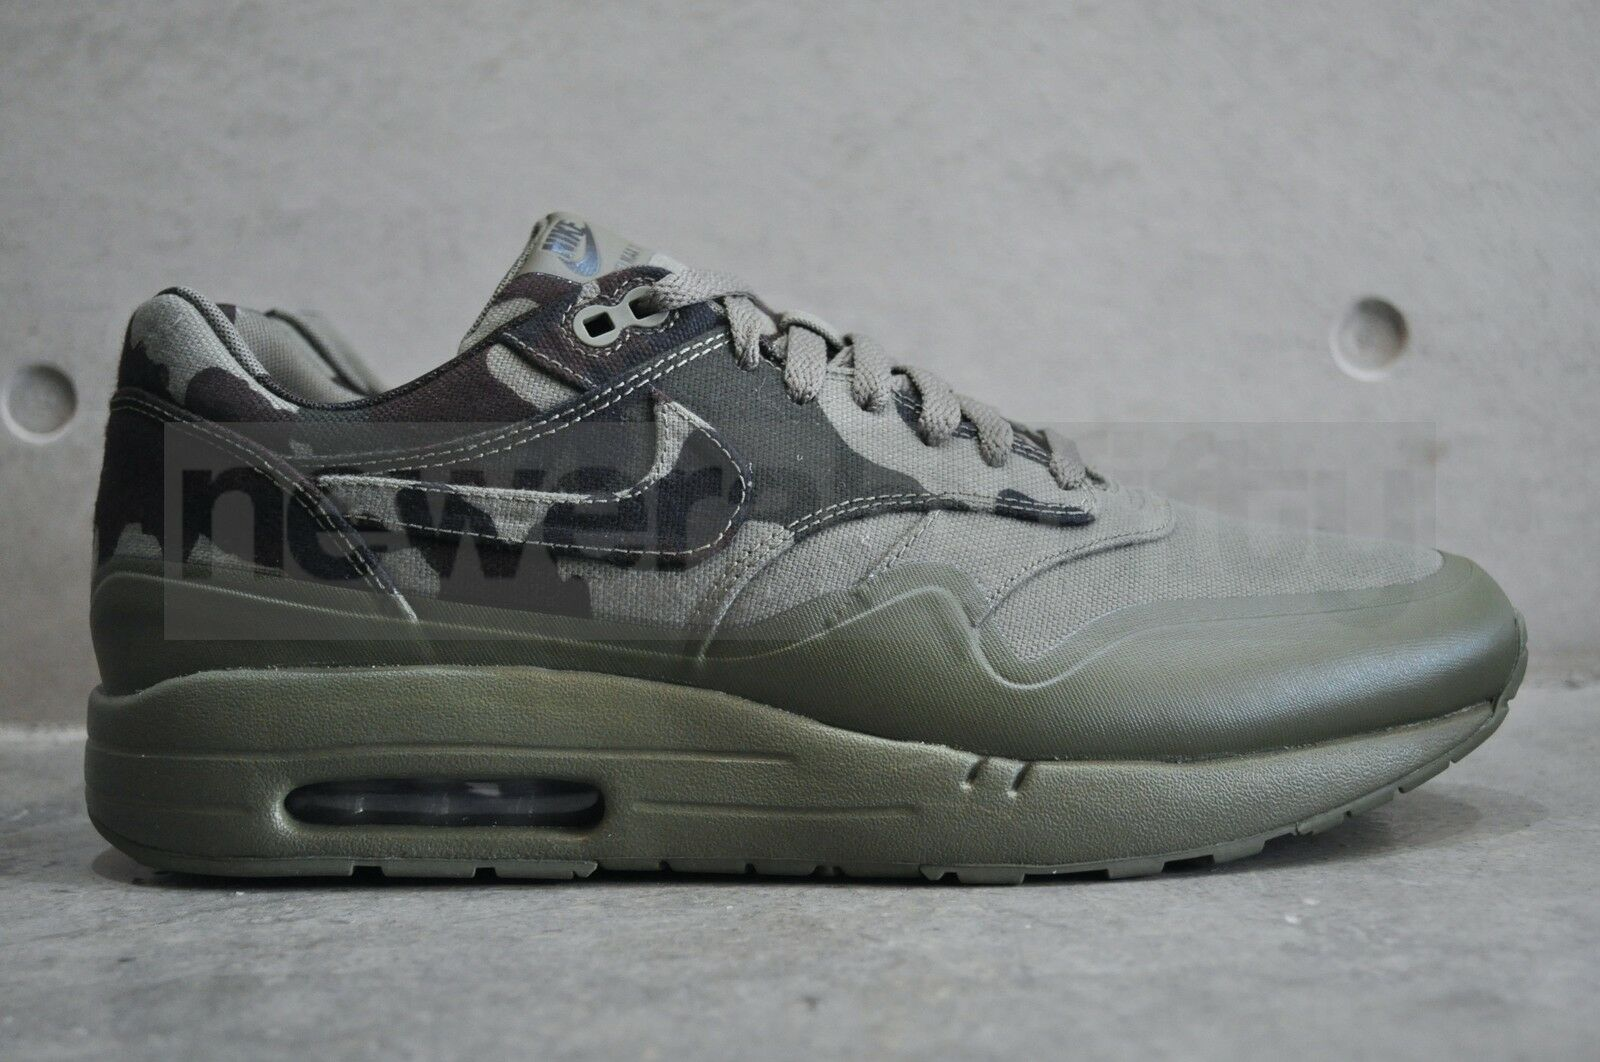 acheter populaire 2fb6d 04e19 Details about Nike Air Max 1 Maxim France SP - Medium Olive/Dark Army Camo  Collection